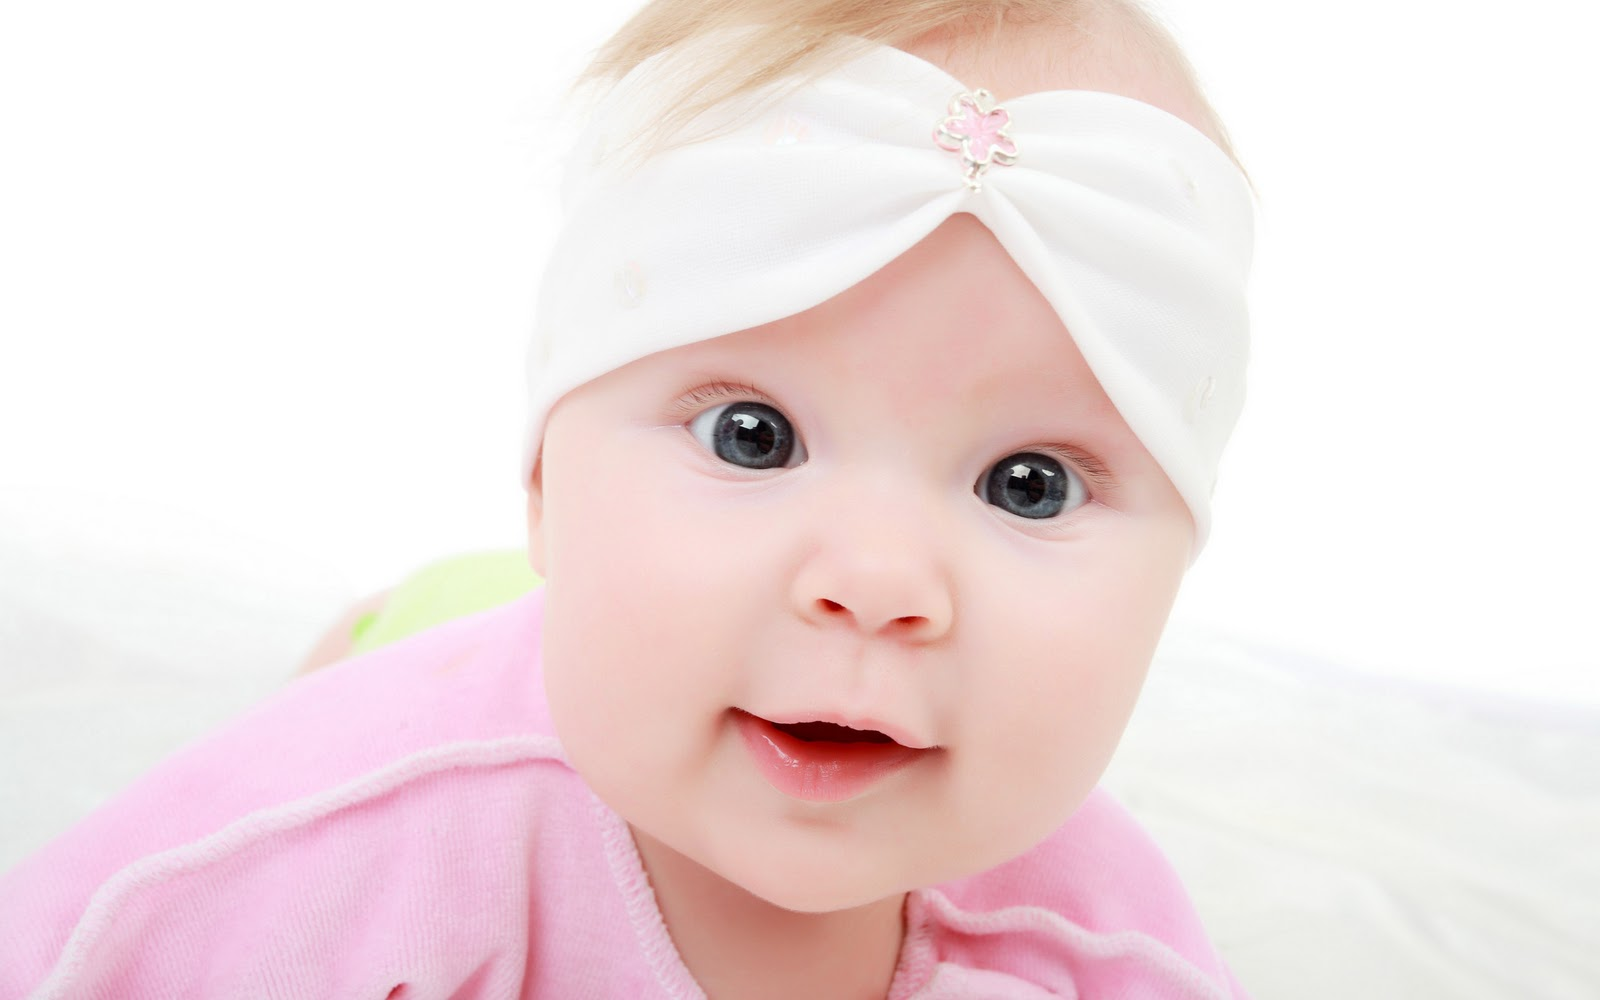 All Images Wallpapers High Resolution Cute Baby Wallpapers: High Quality Cute Babies Wallpapers